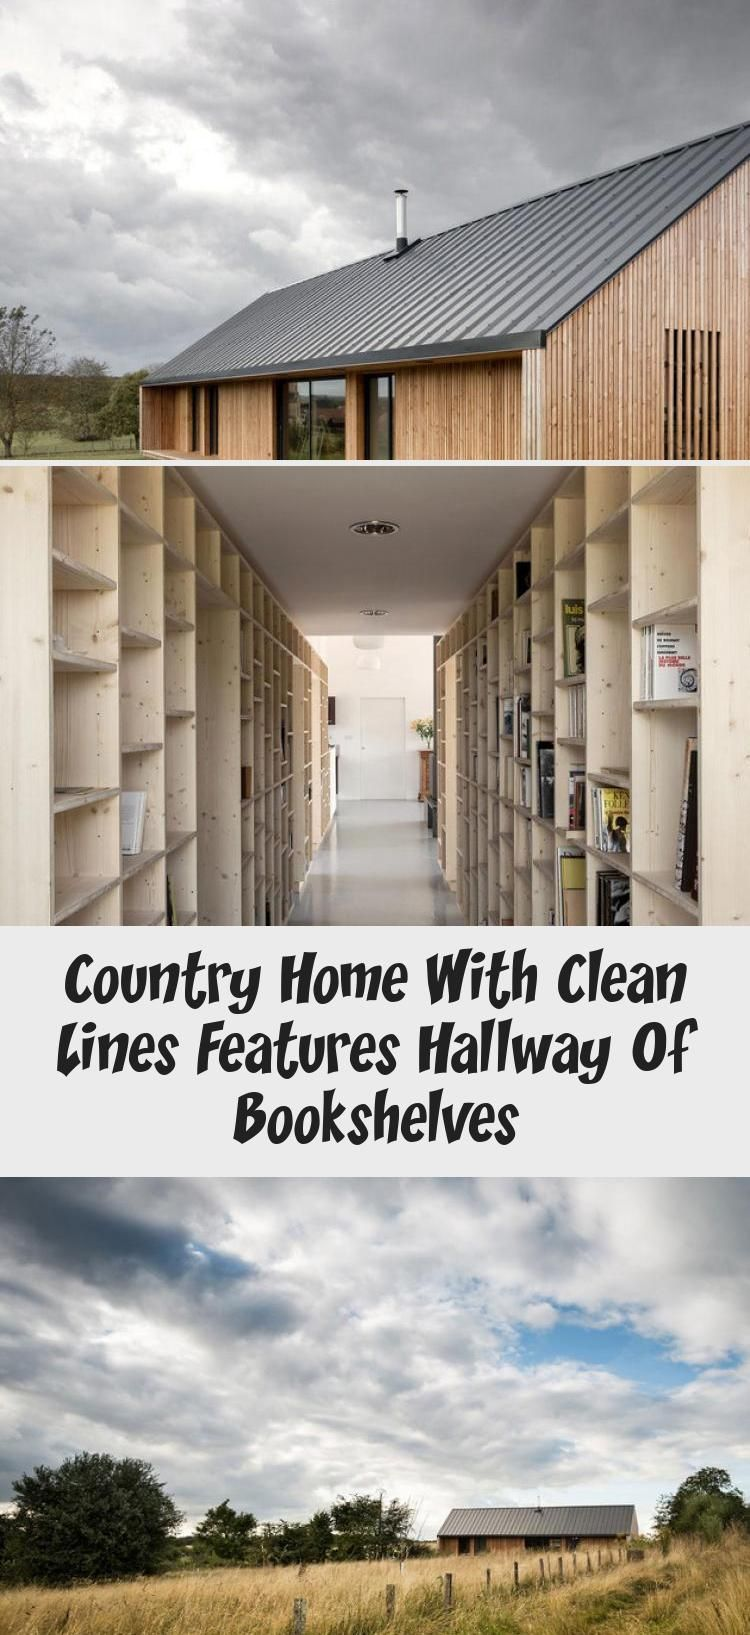 Country Home With Clean Lines Features Hallway Of Bookshelves #hallwaybookshelves Country Home with Clean Lines features Hallway of Bookshelves #countryhomeWithWrapAroundPorches #countryhomeBathroom #Simplecountryhome #countryhomeCurtains #countryhomePorch #hallwaybookshelves